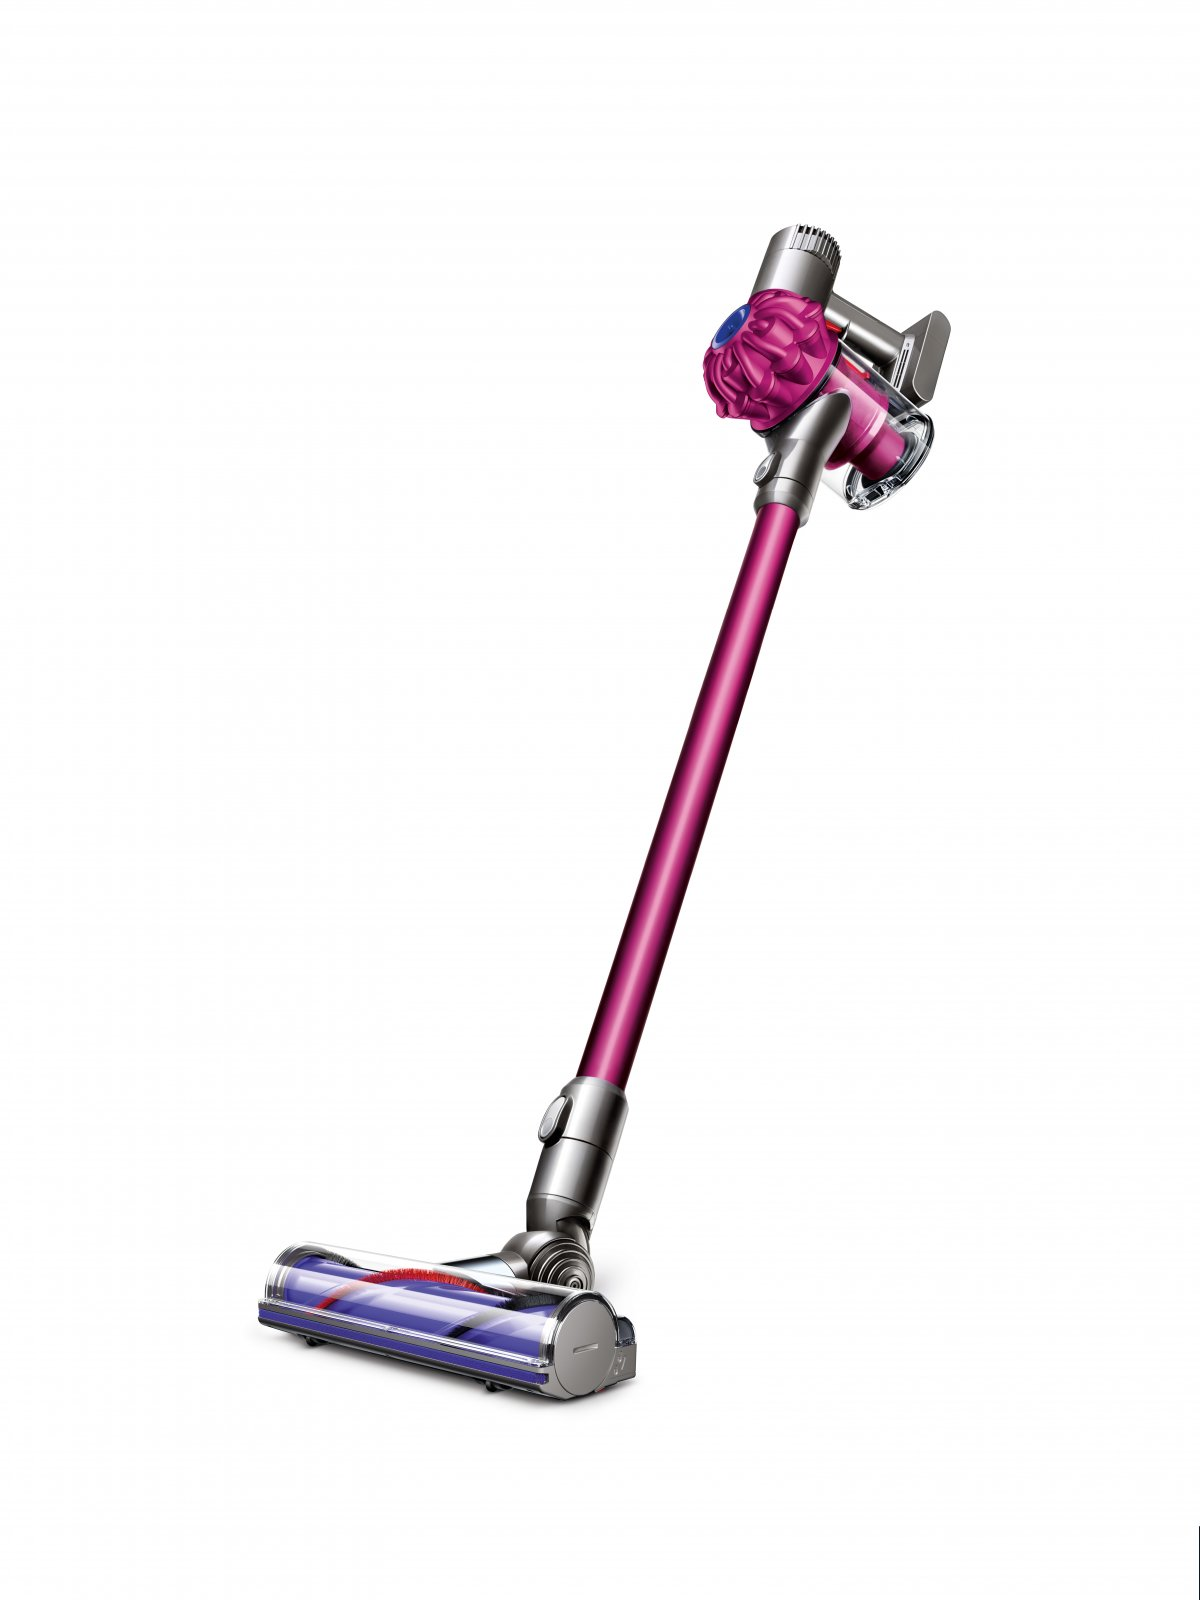 dyson v6 motorhead cordless vacuum 210691 01 885609004969. Black Bedroom Furniture Sets. Home Design Ideas